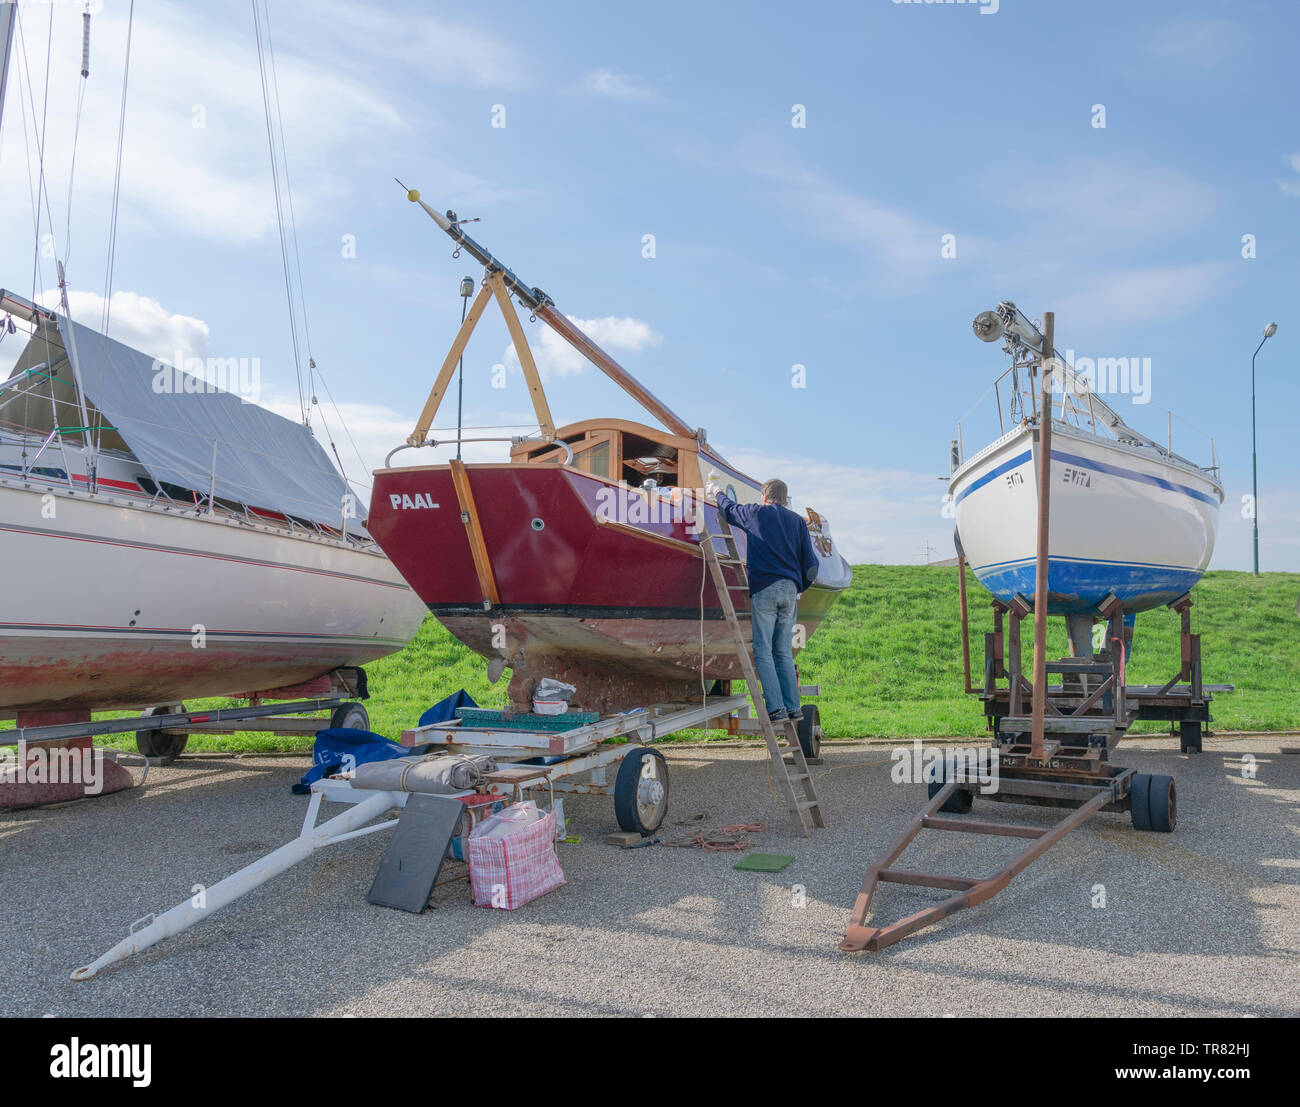 Paal, Netherlands, 27 March 2019, Man is his sailing boat to refurbishing - Stock Image